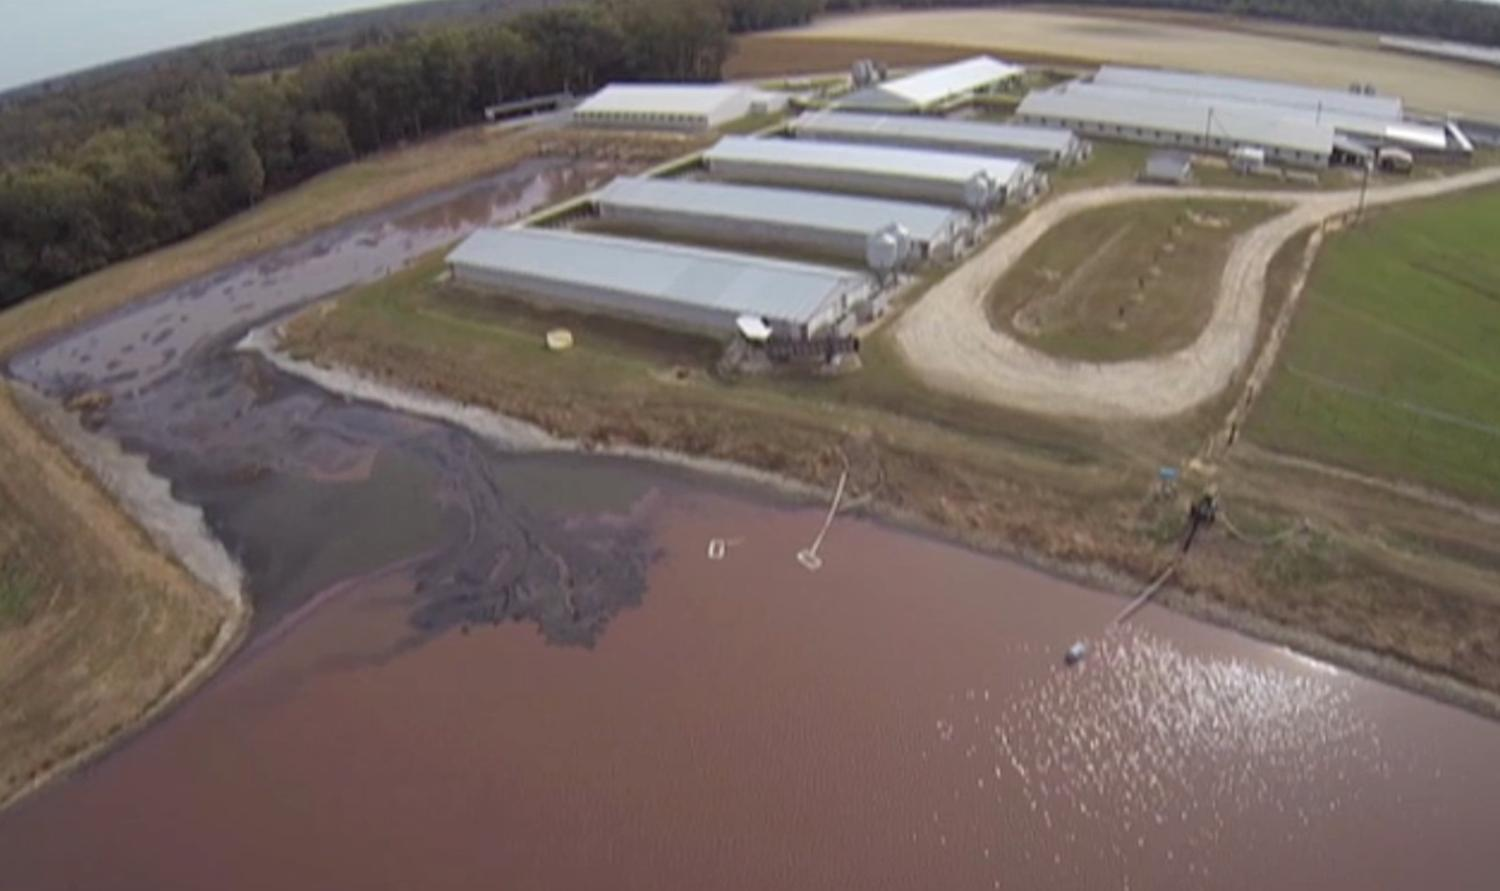 Factory Farm for cattle showing pollution